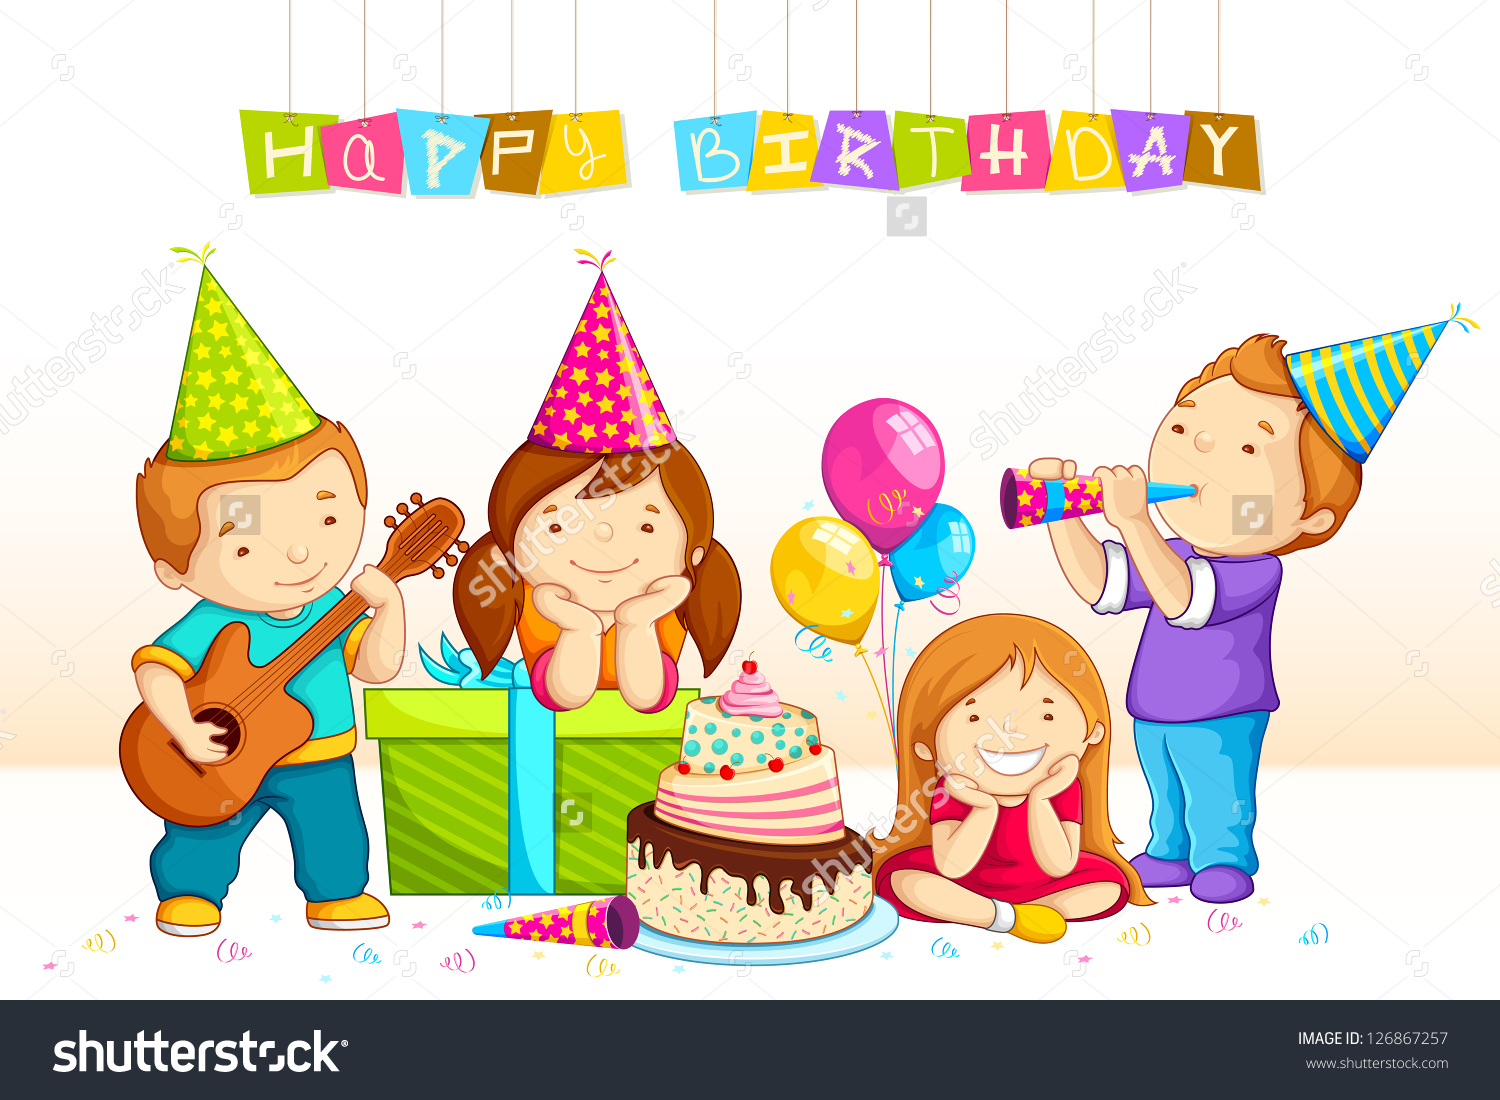 Celebrate clipart birthday cake.  collection of celebrations